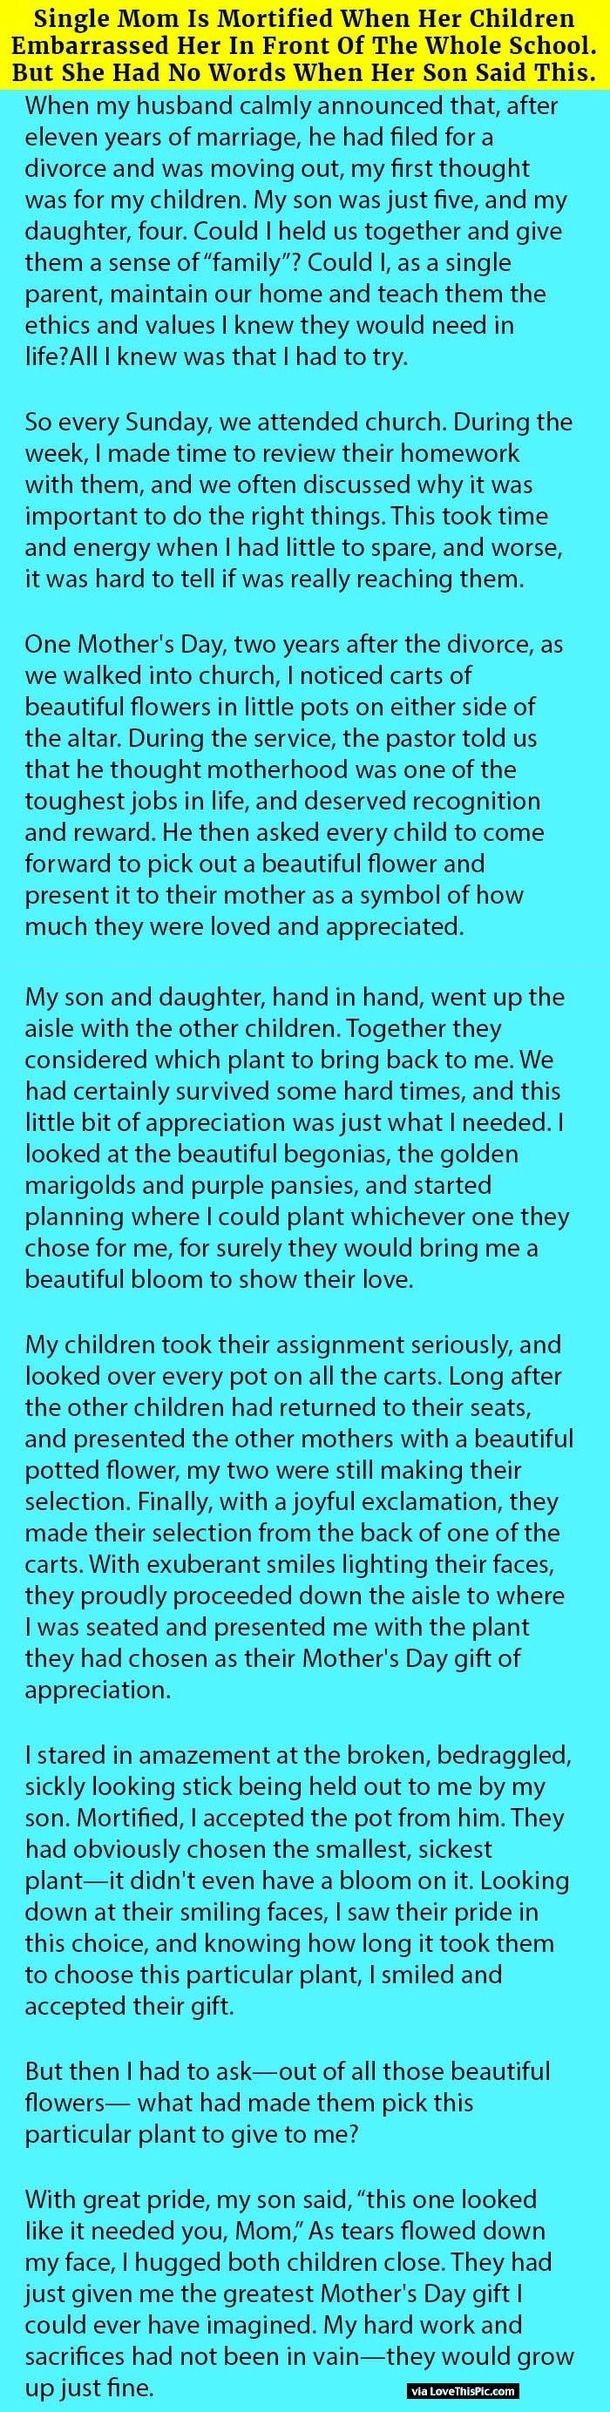 A single mom whose husband divorced her after many years of marriage talks about what her children did for her on Mother's Day. It is incredible.